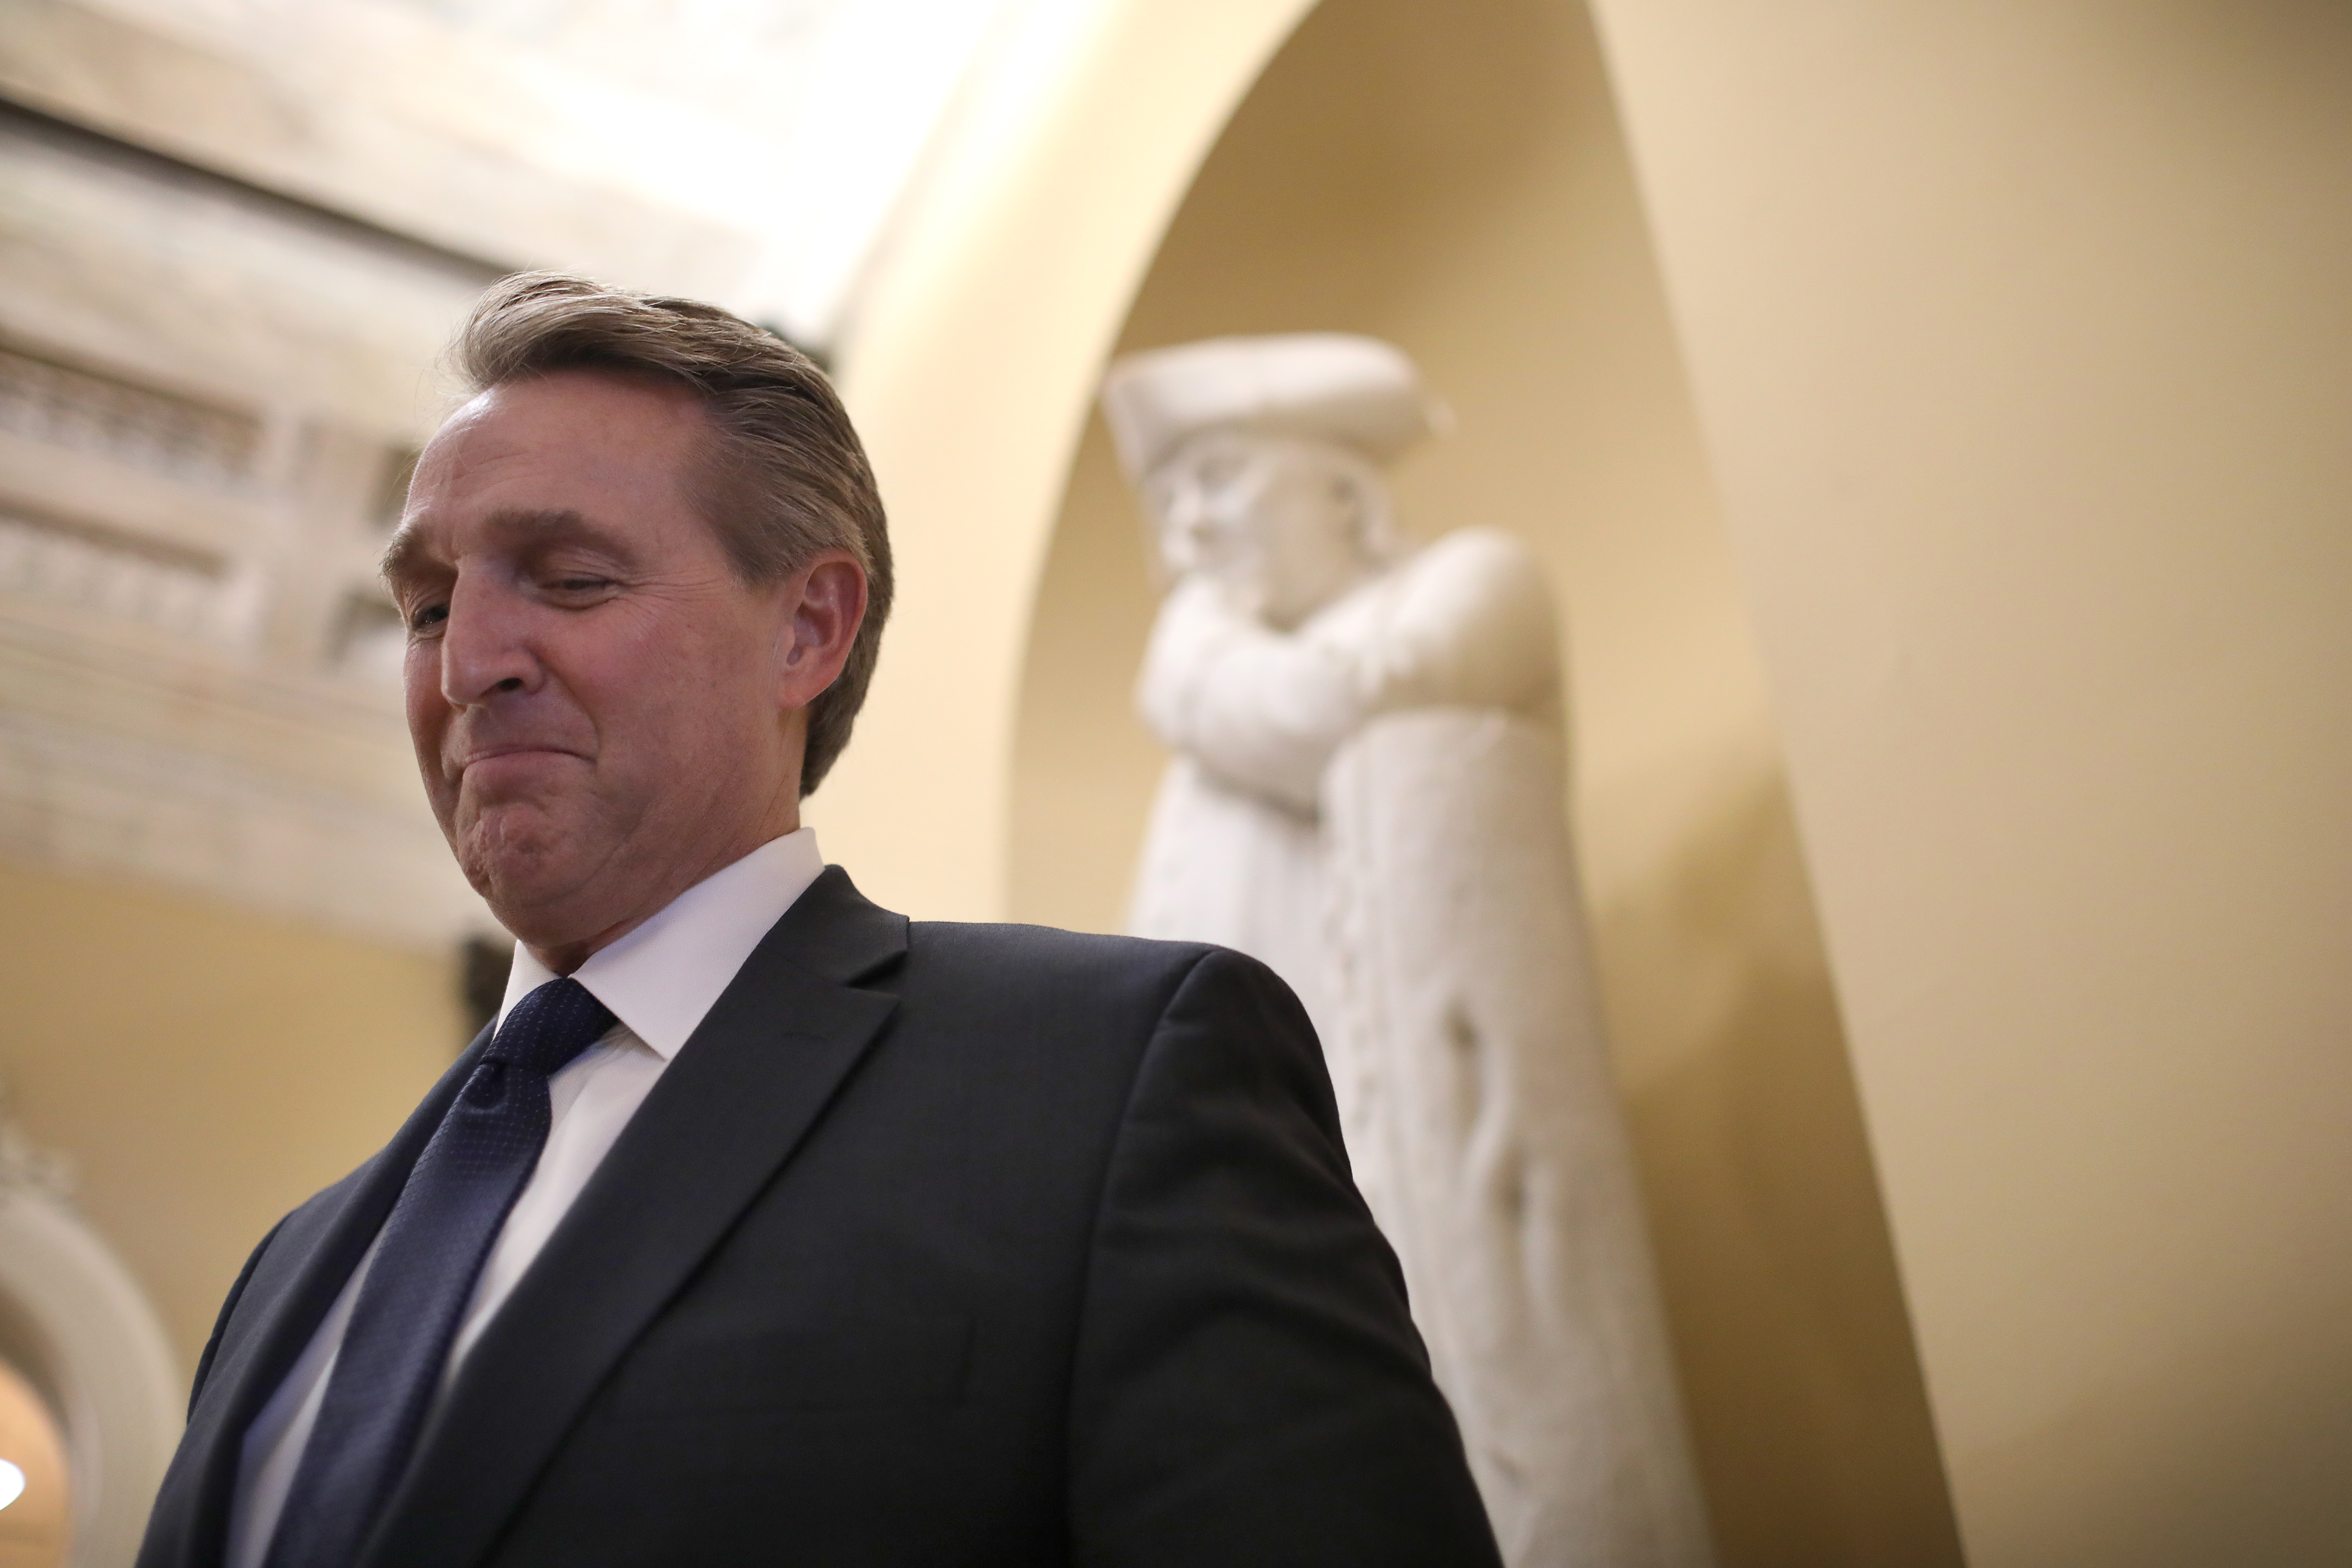 Sen. Jeff Flake answers questions from a reporter after delivering his farewell speech on the floor of the U.S. Senate December 13, 2018 in Washington, DC. (Win McNamee/Getty Images)